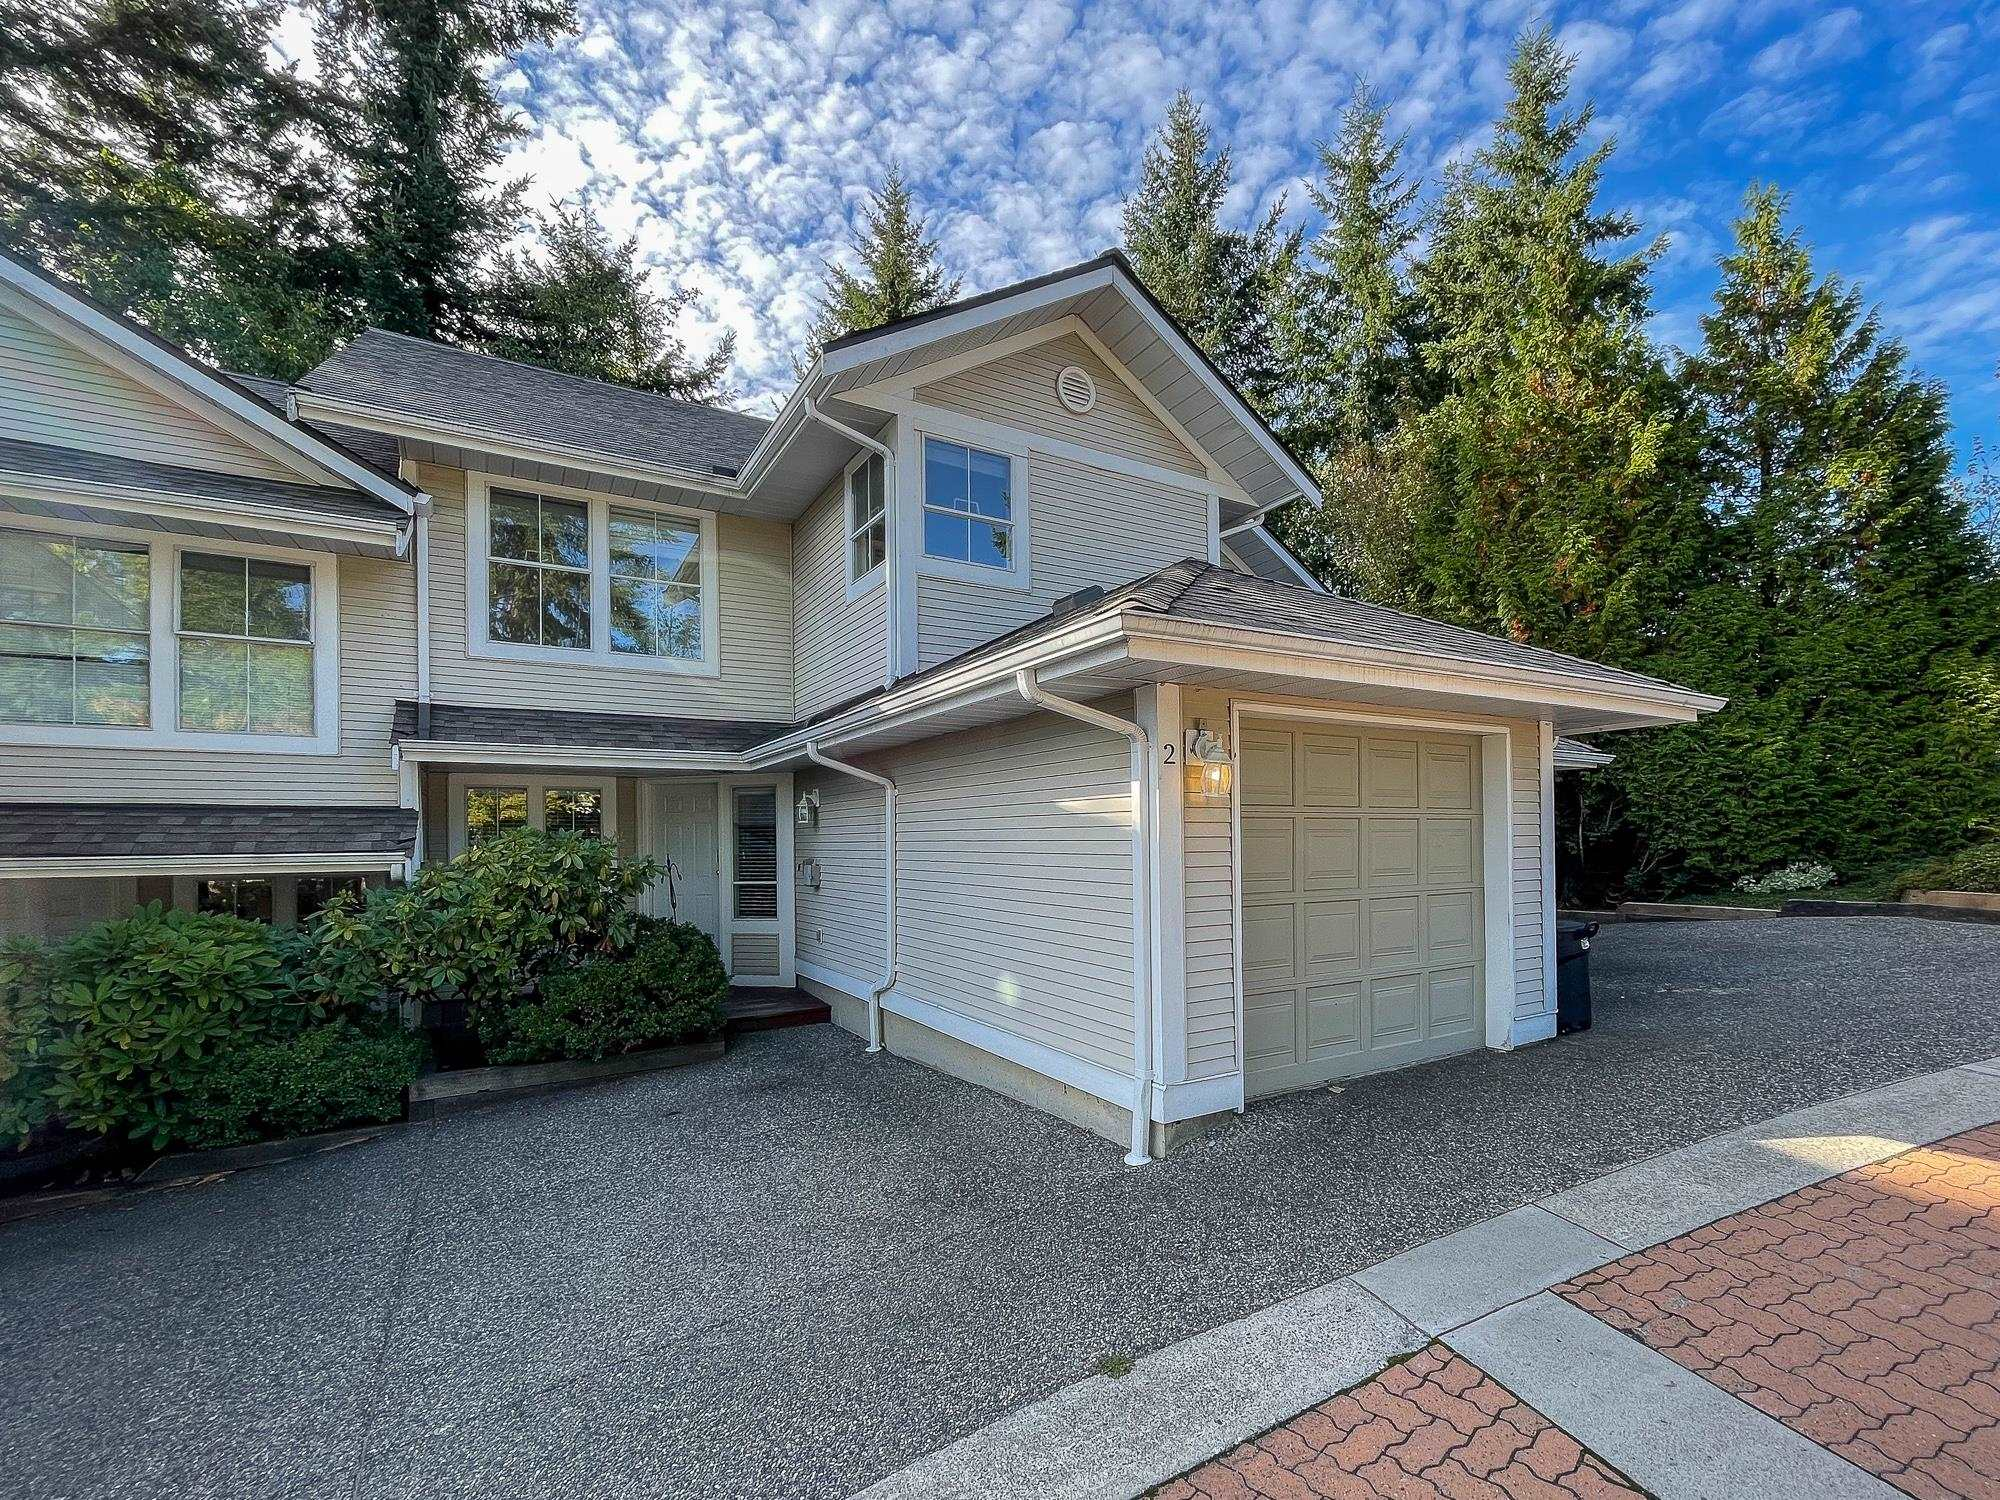 2 2590 PANORAMA DRIVE - Westwood Plateau Townhouse for sale, 4 Bedrooms (R2620319) - #1